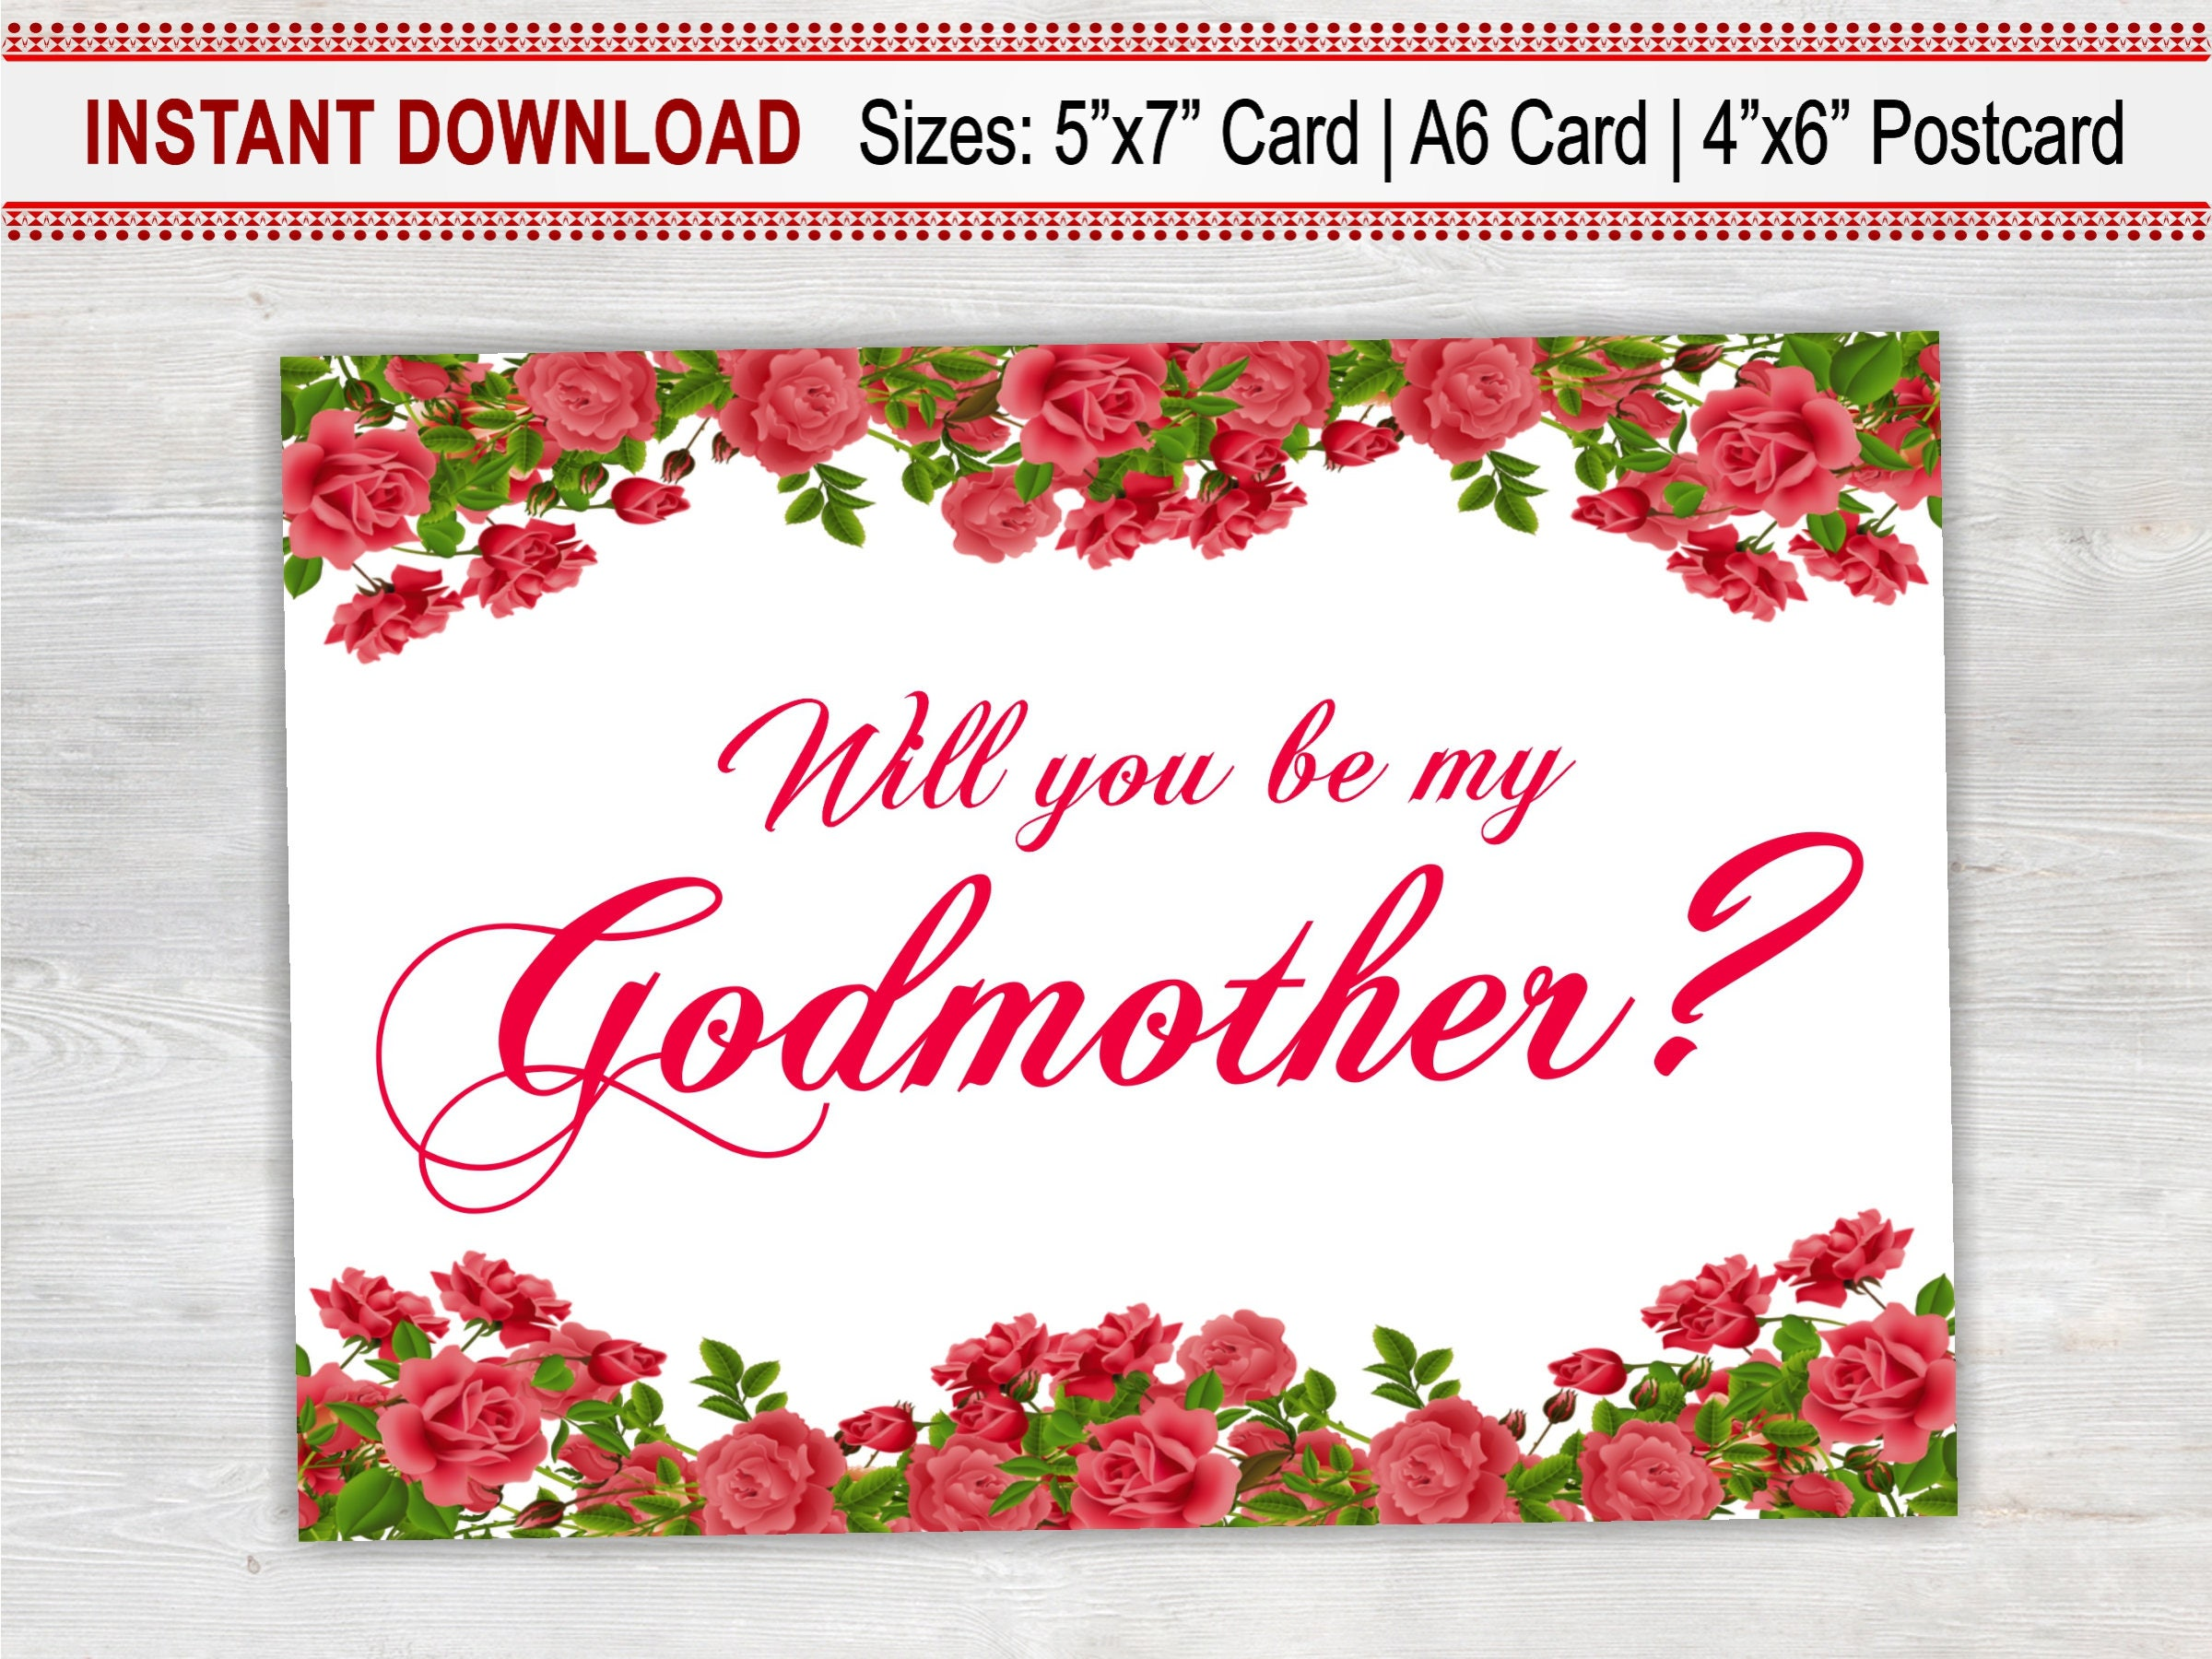 Will you be my godmother printable card floral card baptism card will you be my godmother printable card floral card baptism card godmother m4hsunfo